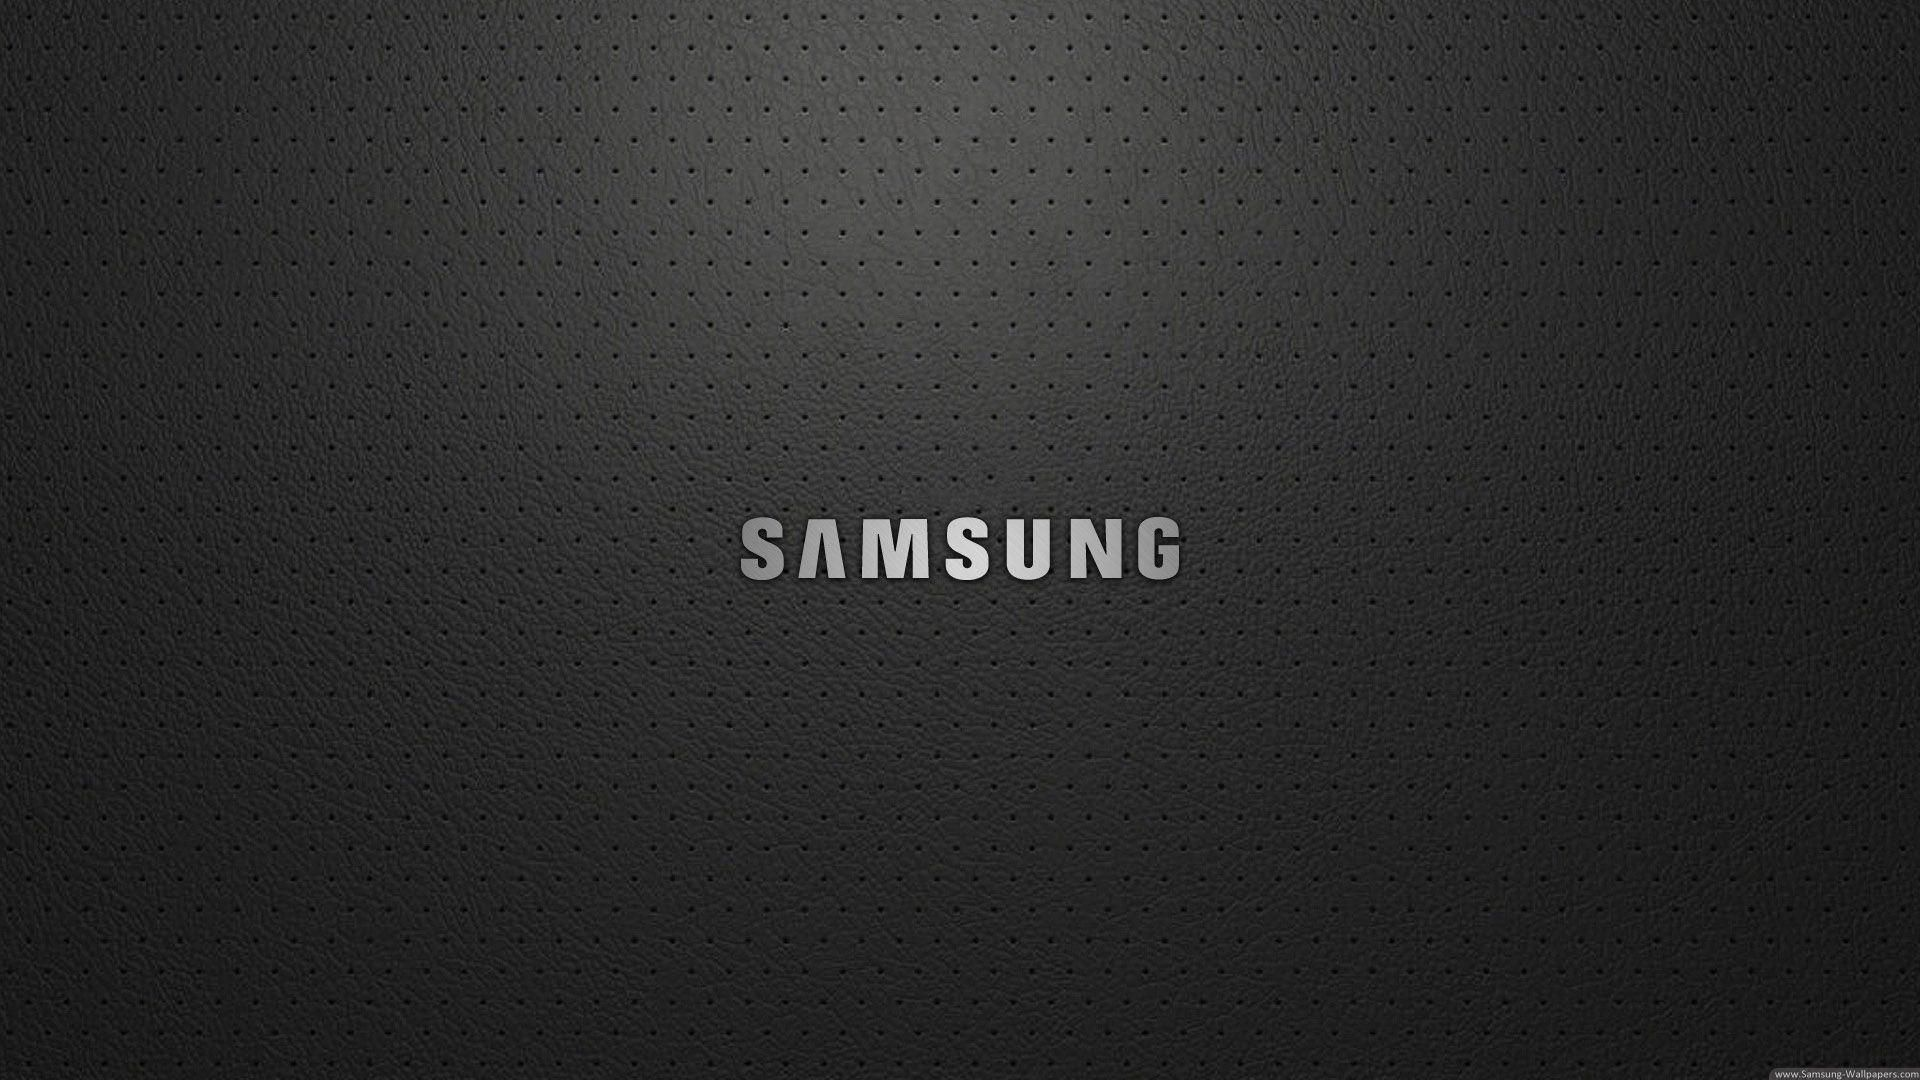 Samsung Is Launching Cj79 Curved Qled Screen With Thunderbolt 3 Samsung Logo Samsung Galaxy Wallpaper Android Samsung Wallpaper